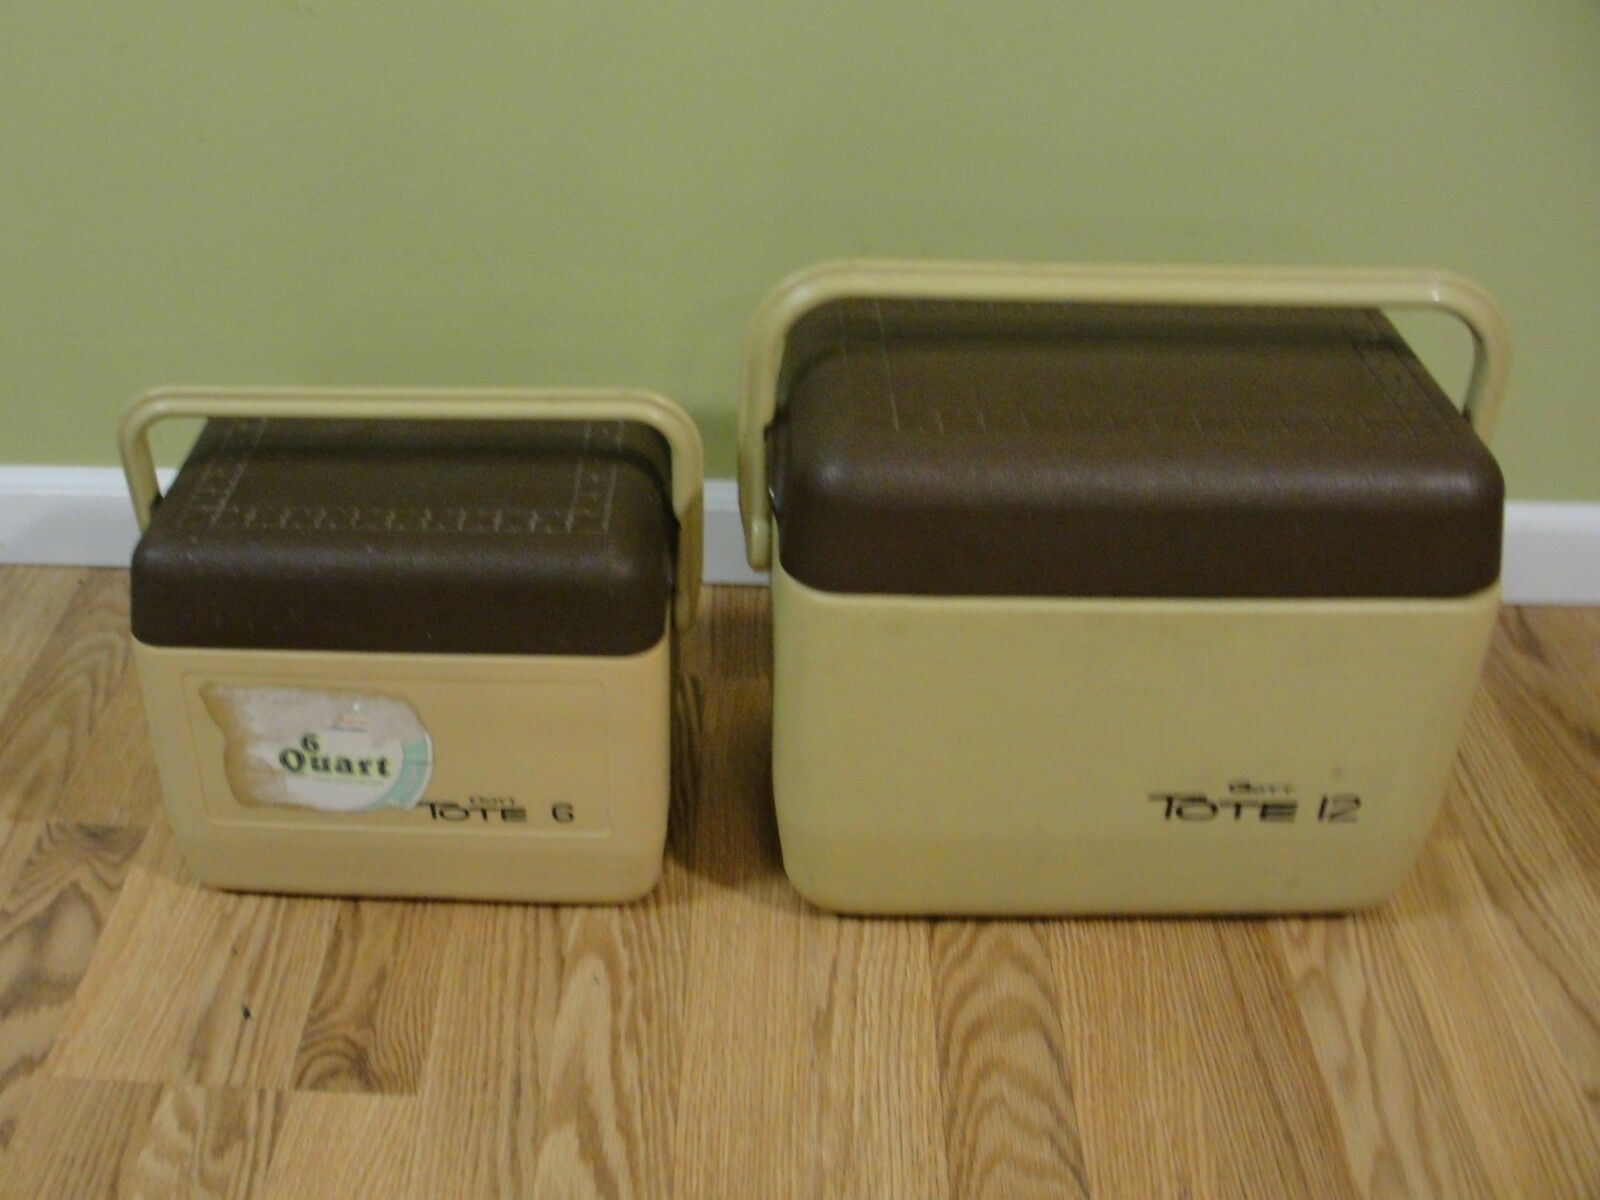 Vintage GOTT Tote 12 & Tote 6  Brown Tan Cooler Lunch Box Model 6&12 qt USA